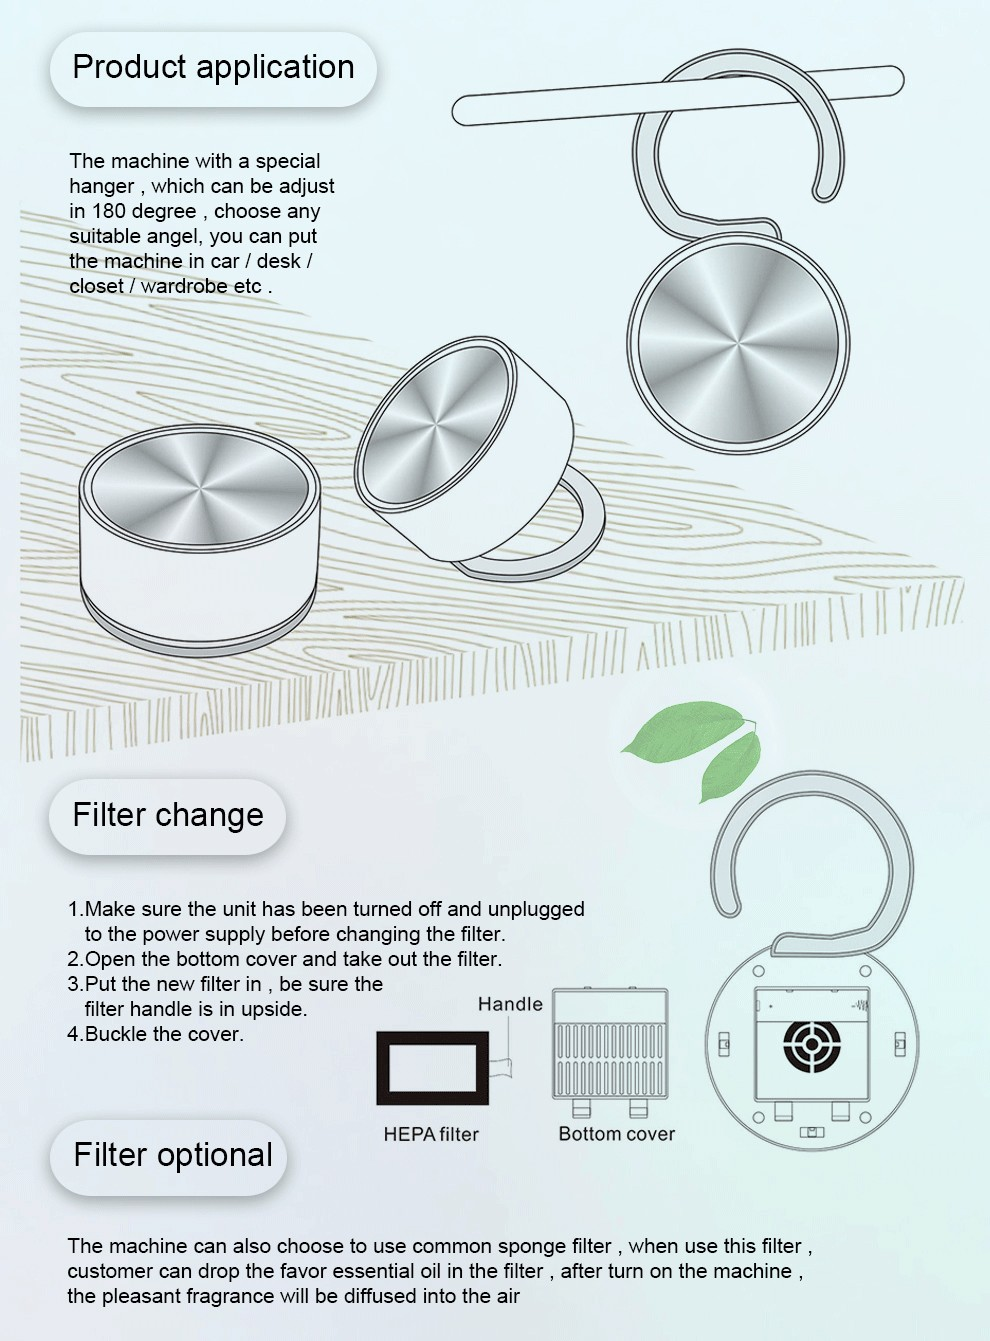 wall mounted negative ion air purifiers with HEPA filters remove pm2.5